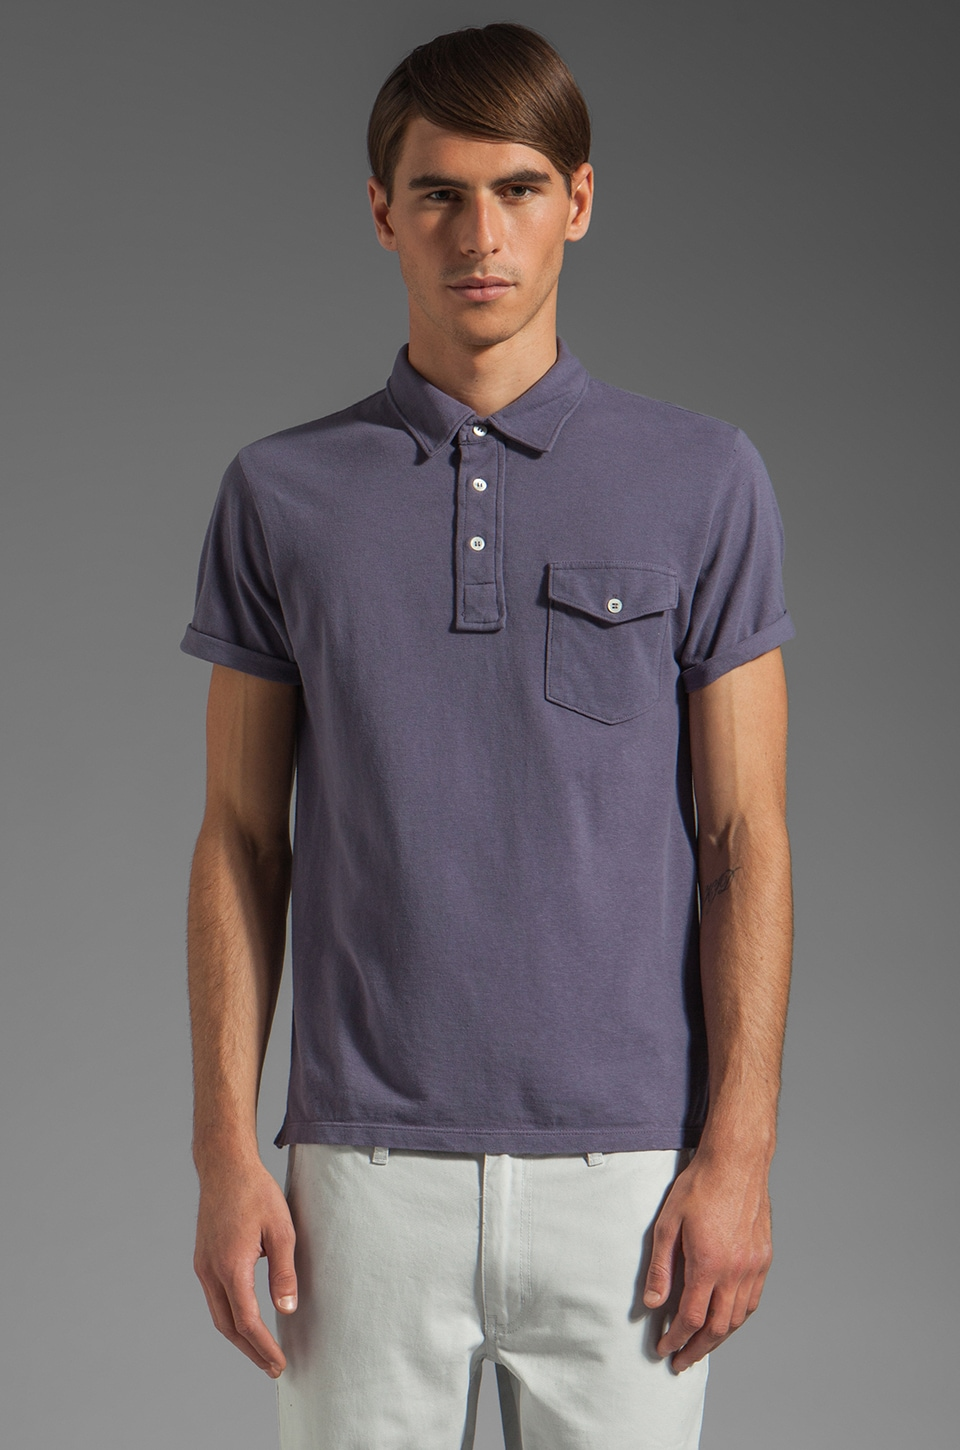 TODD SNYDER Classic Pique Polo in Blueberry